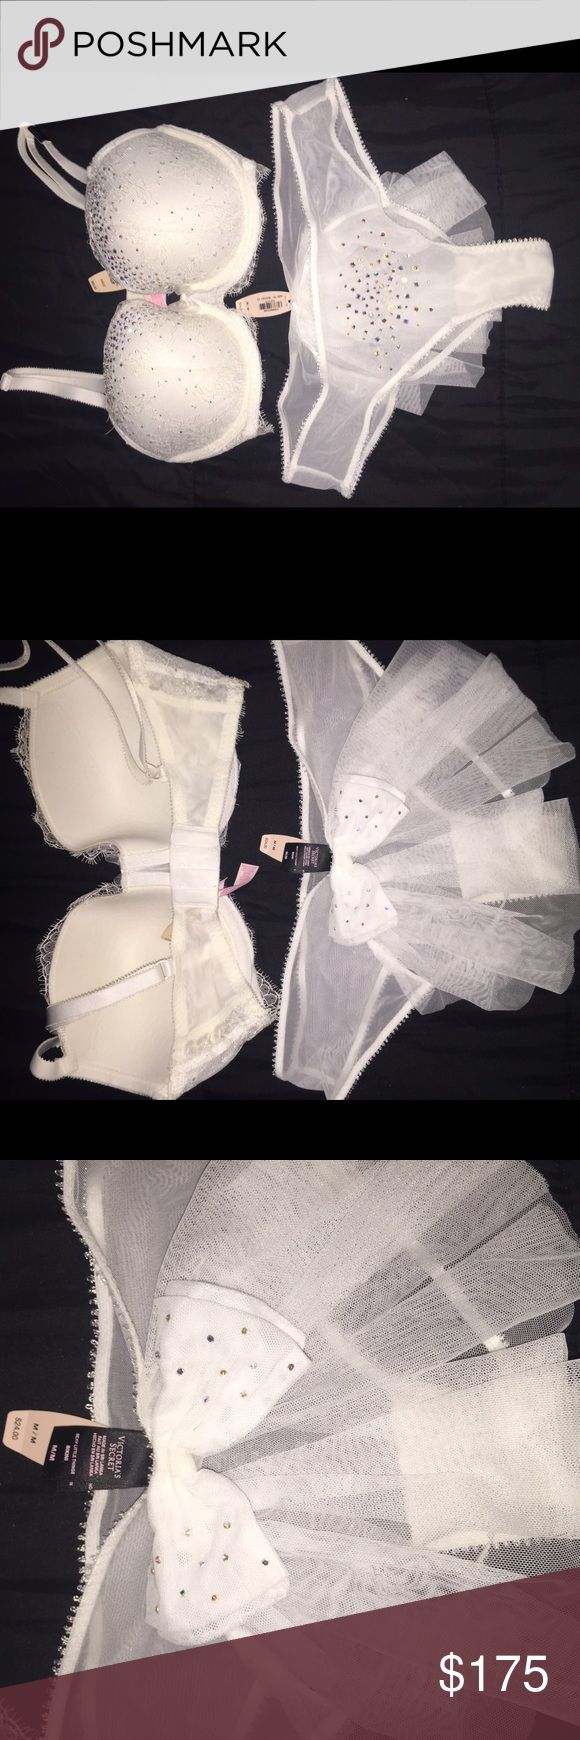 Victoria secret Bridal bra and panti 😍😍 Limited edition matching bra and Panty. completely new with tag. Came out at the Victoria's Secret fashion show '14  definitely a collector     Size 34dd / M PINK Victoria's Secret Intimates & Sleepwear Bras